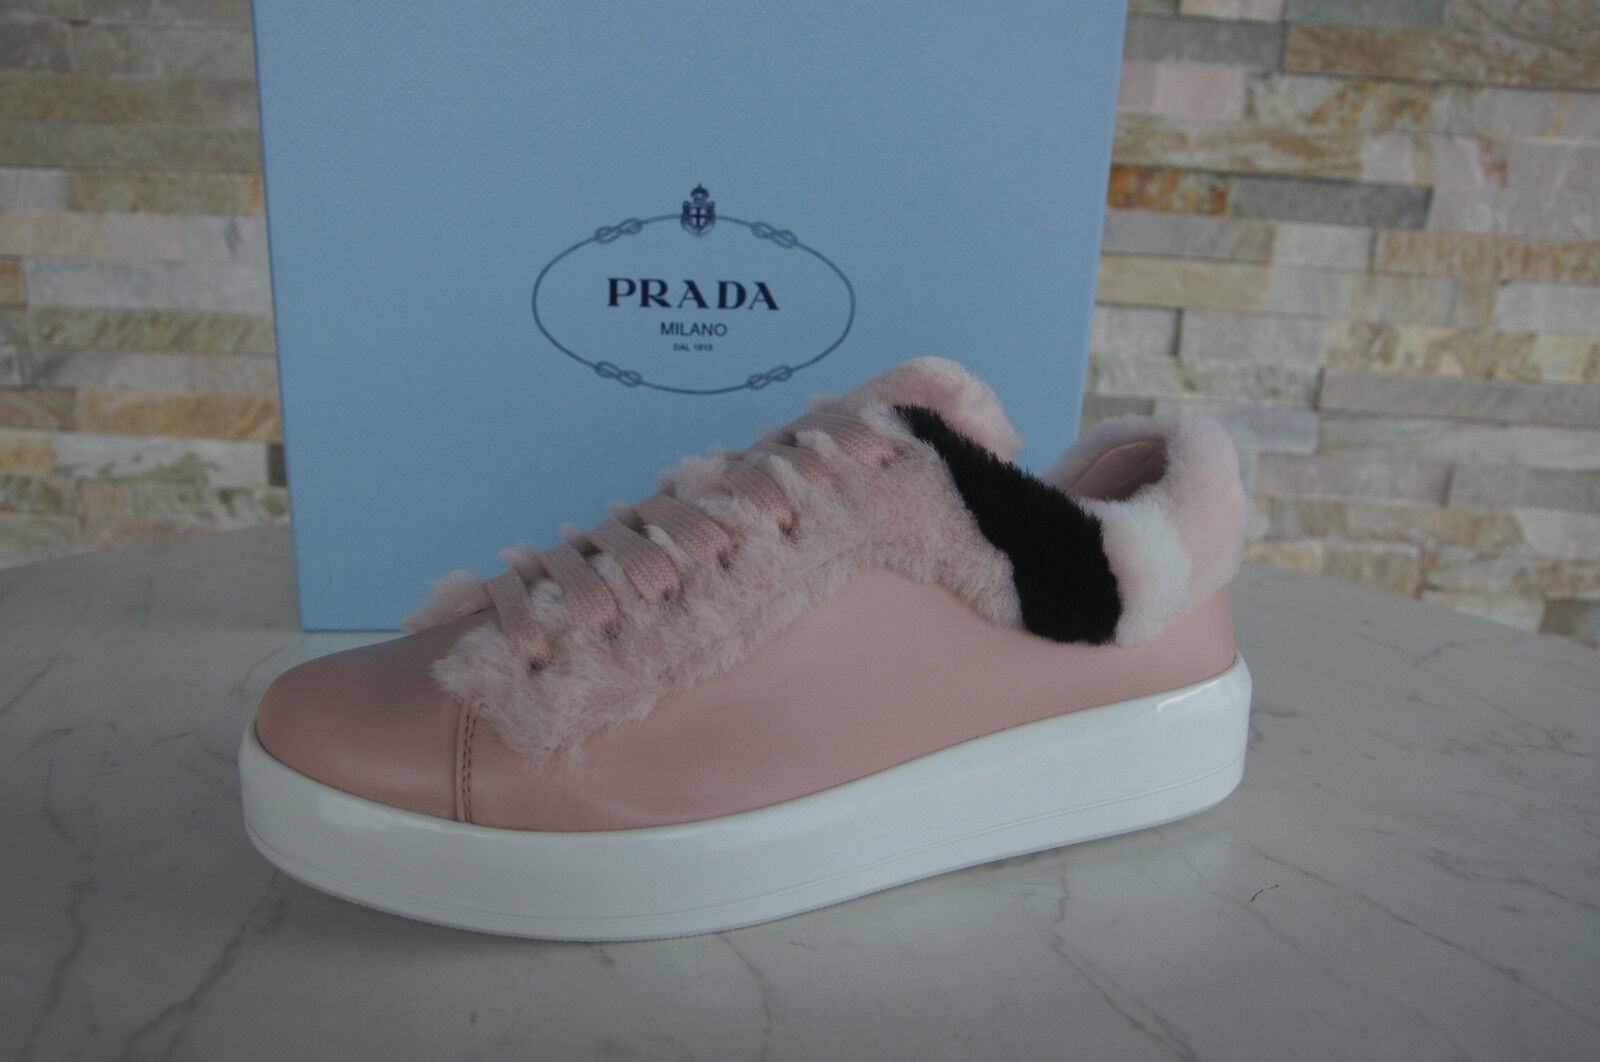 Prada 37,5 Sneakers Trainers fur shoes Lace up Sheepskin Peach New Previously